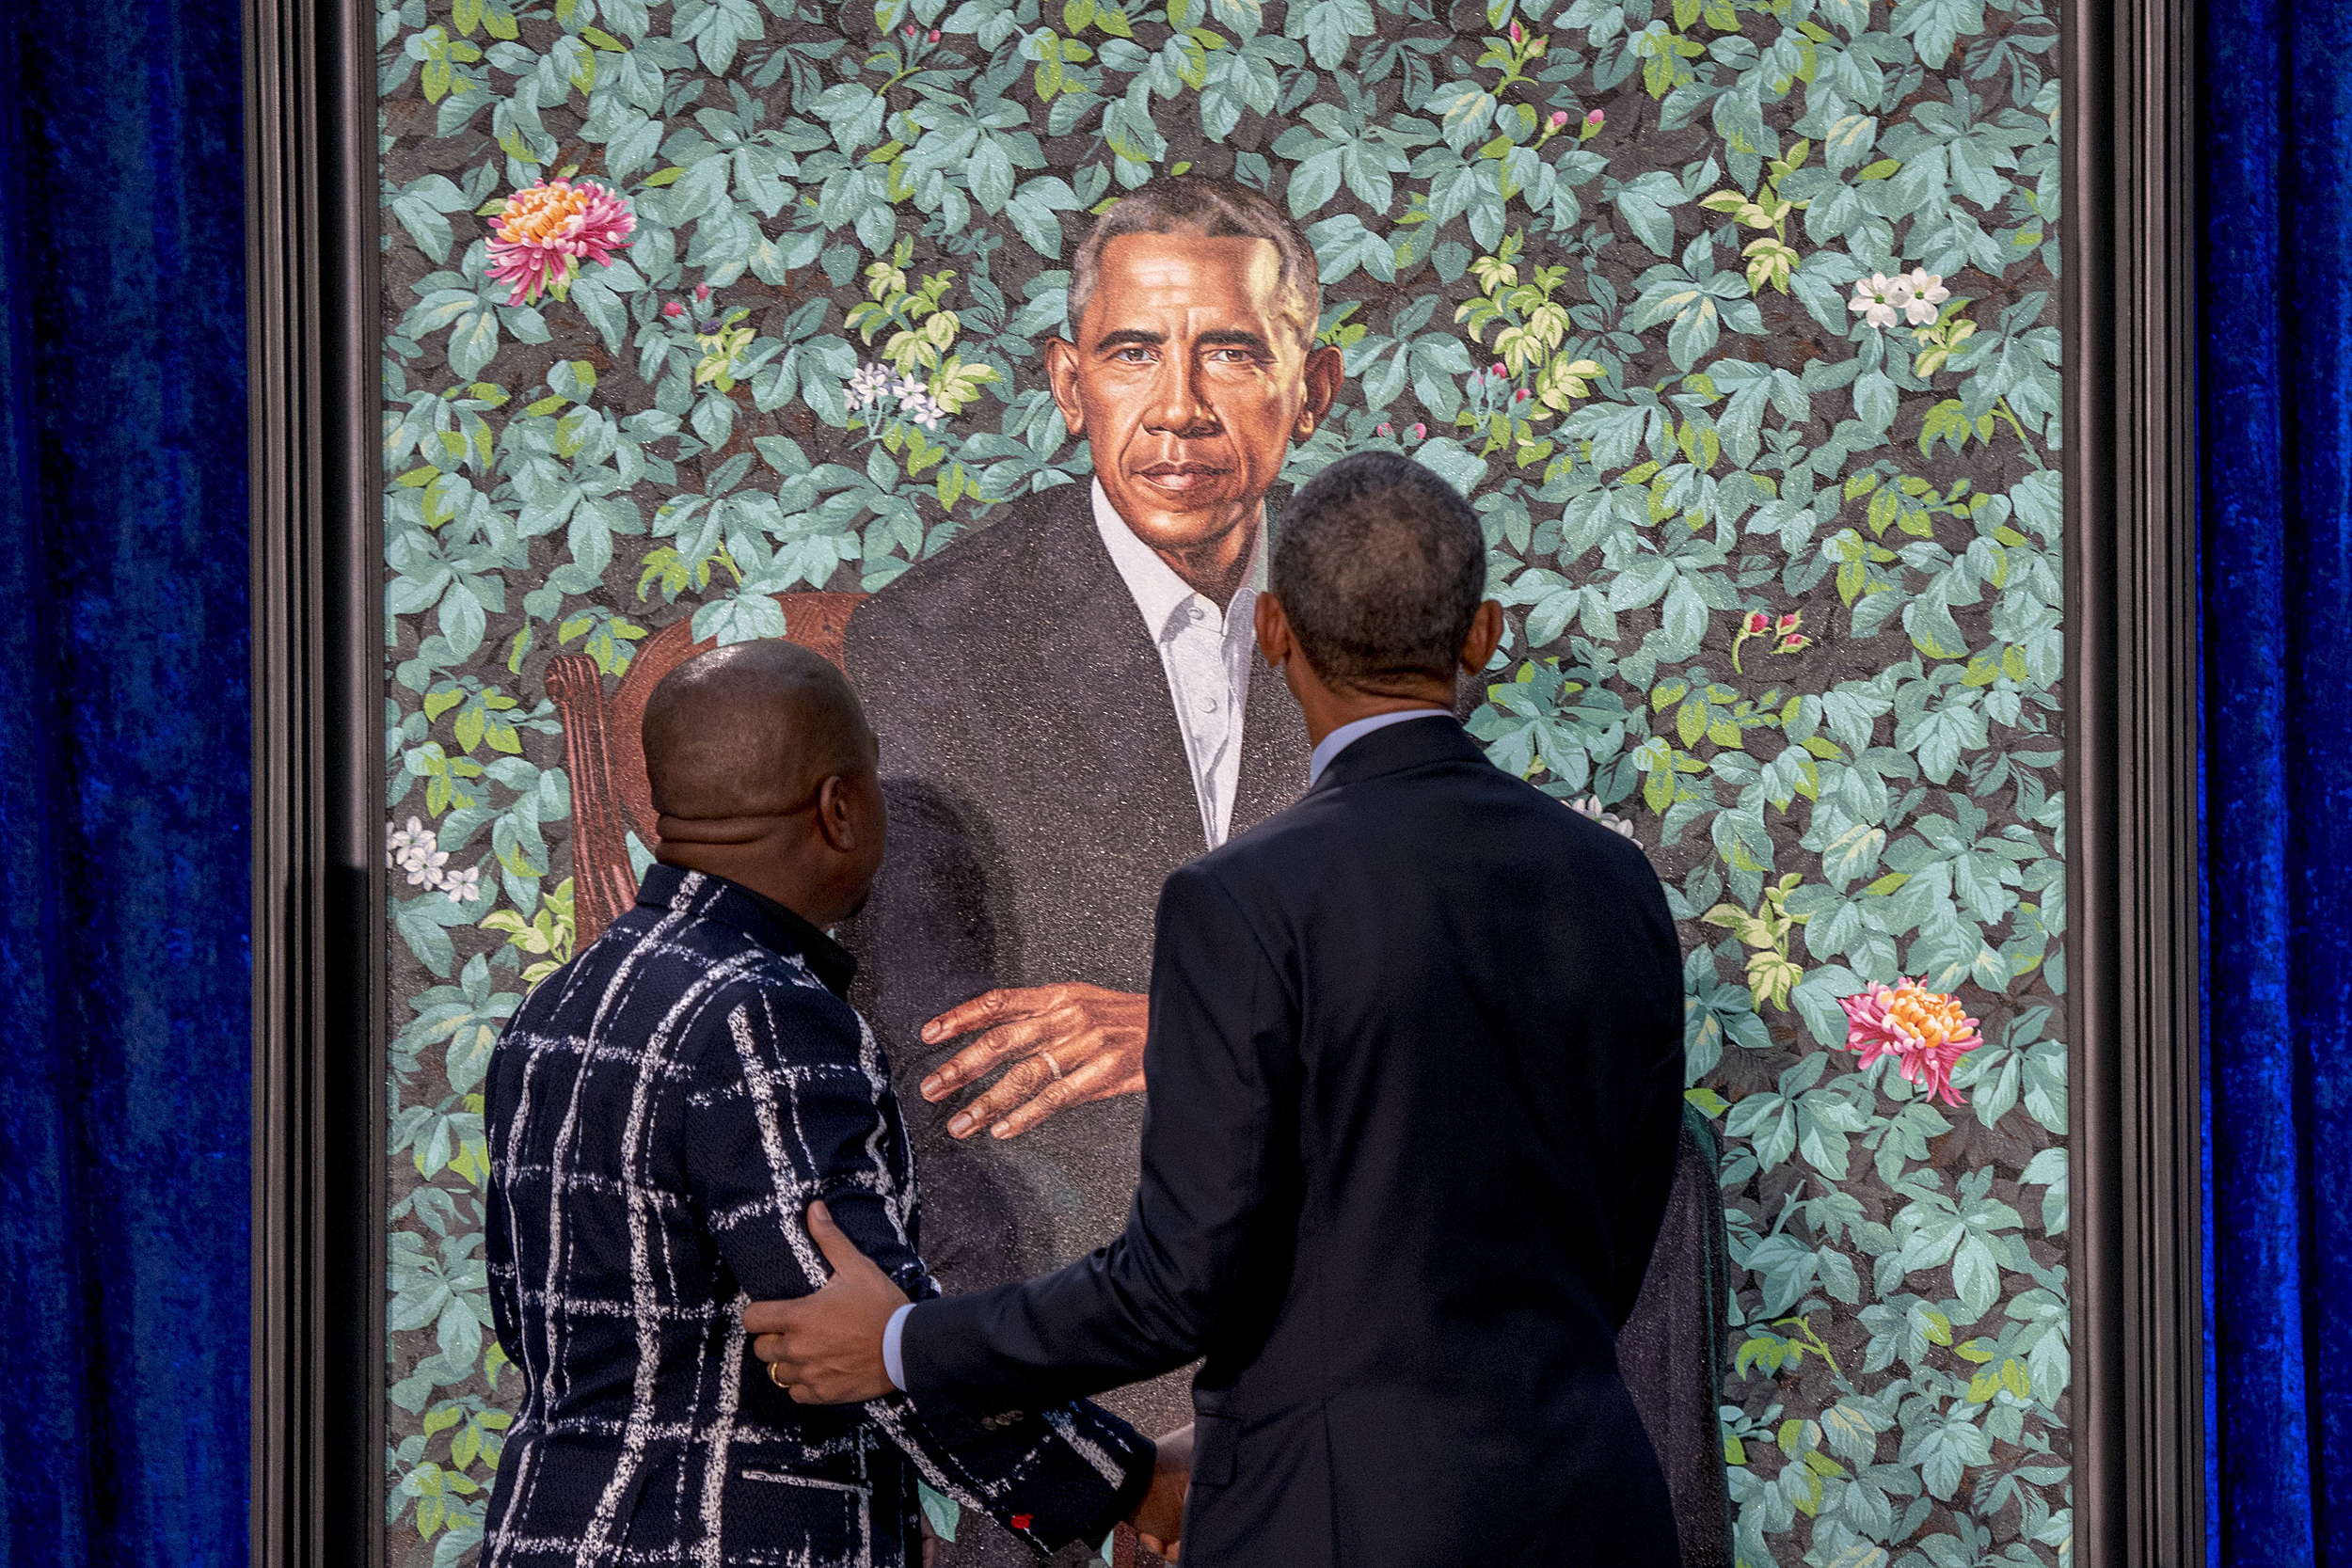 Kehinde wileys obama portrait controversy proves americans struggle to engage with art